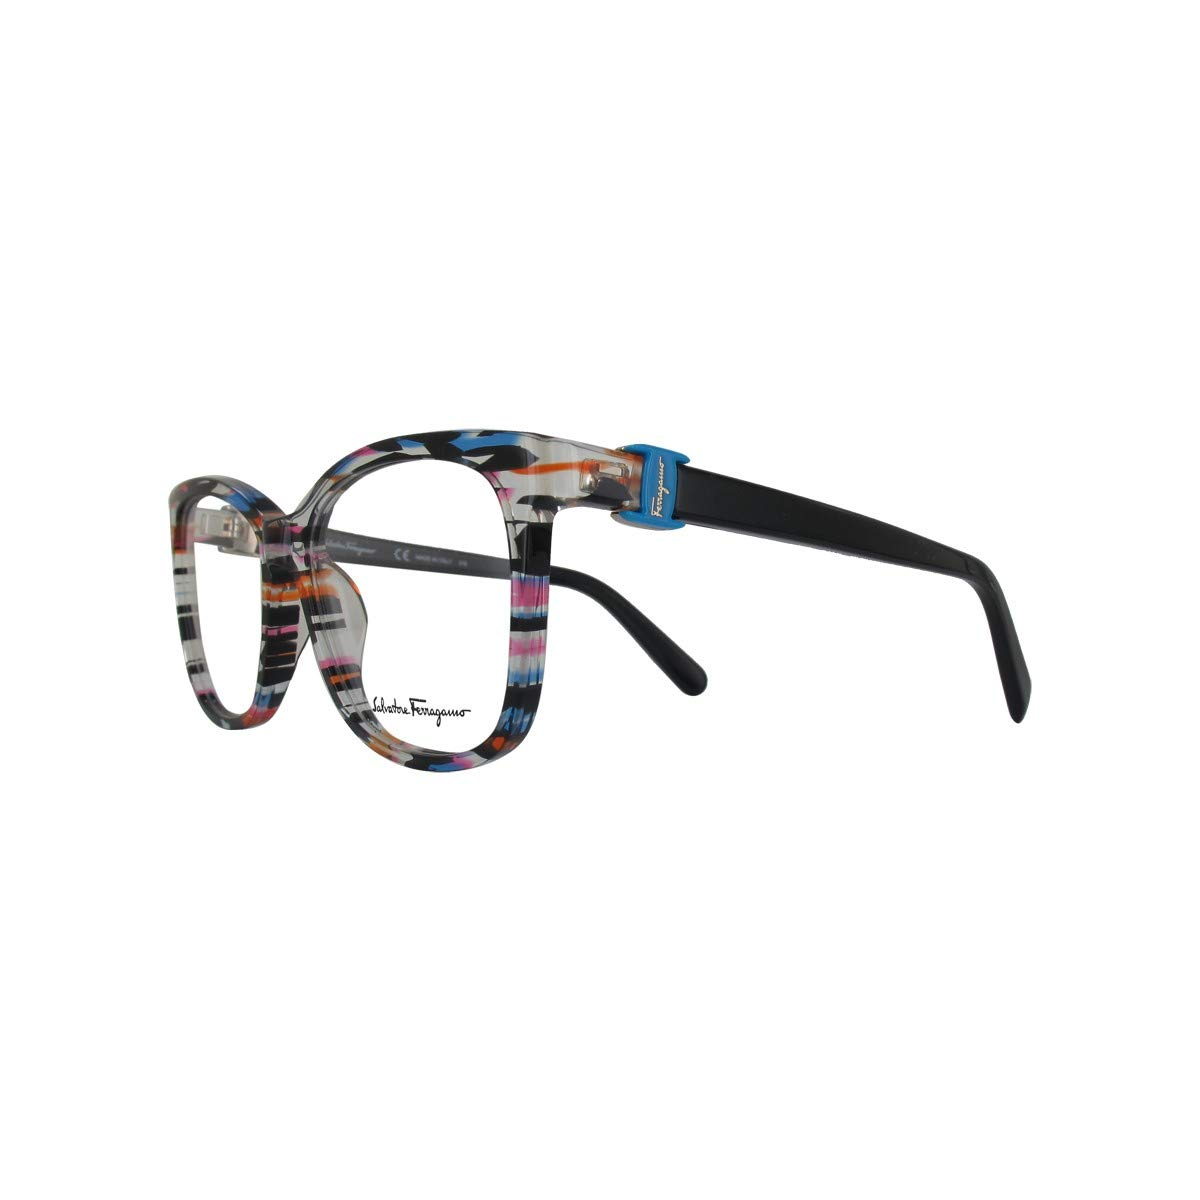 73867c792c Amazon.com  Eyeglasses FERRAGAMO SF2760 996 GEOMETRIC FUCHSIA AZURE   Clothing